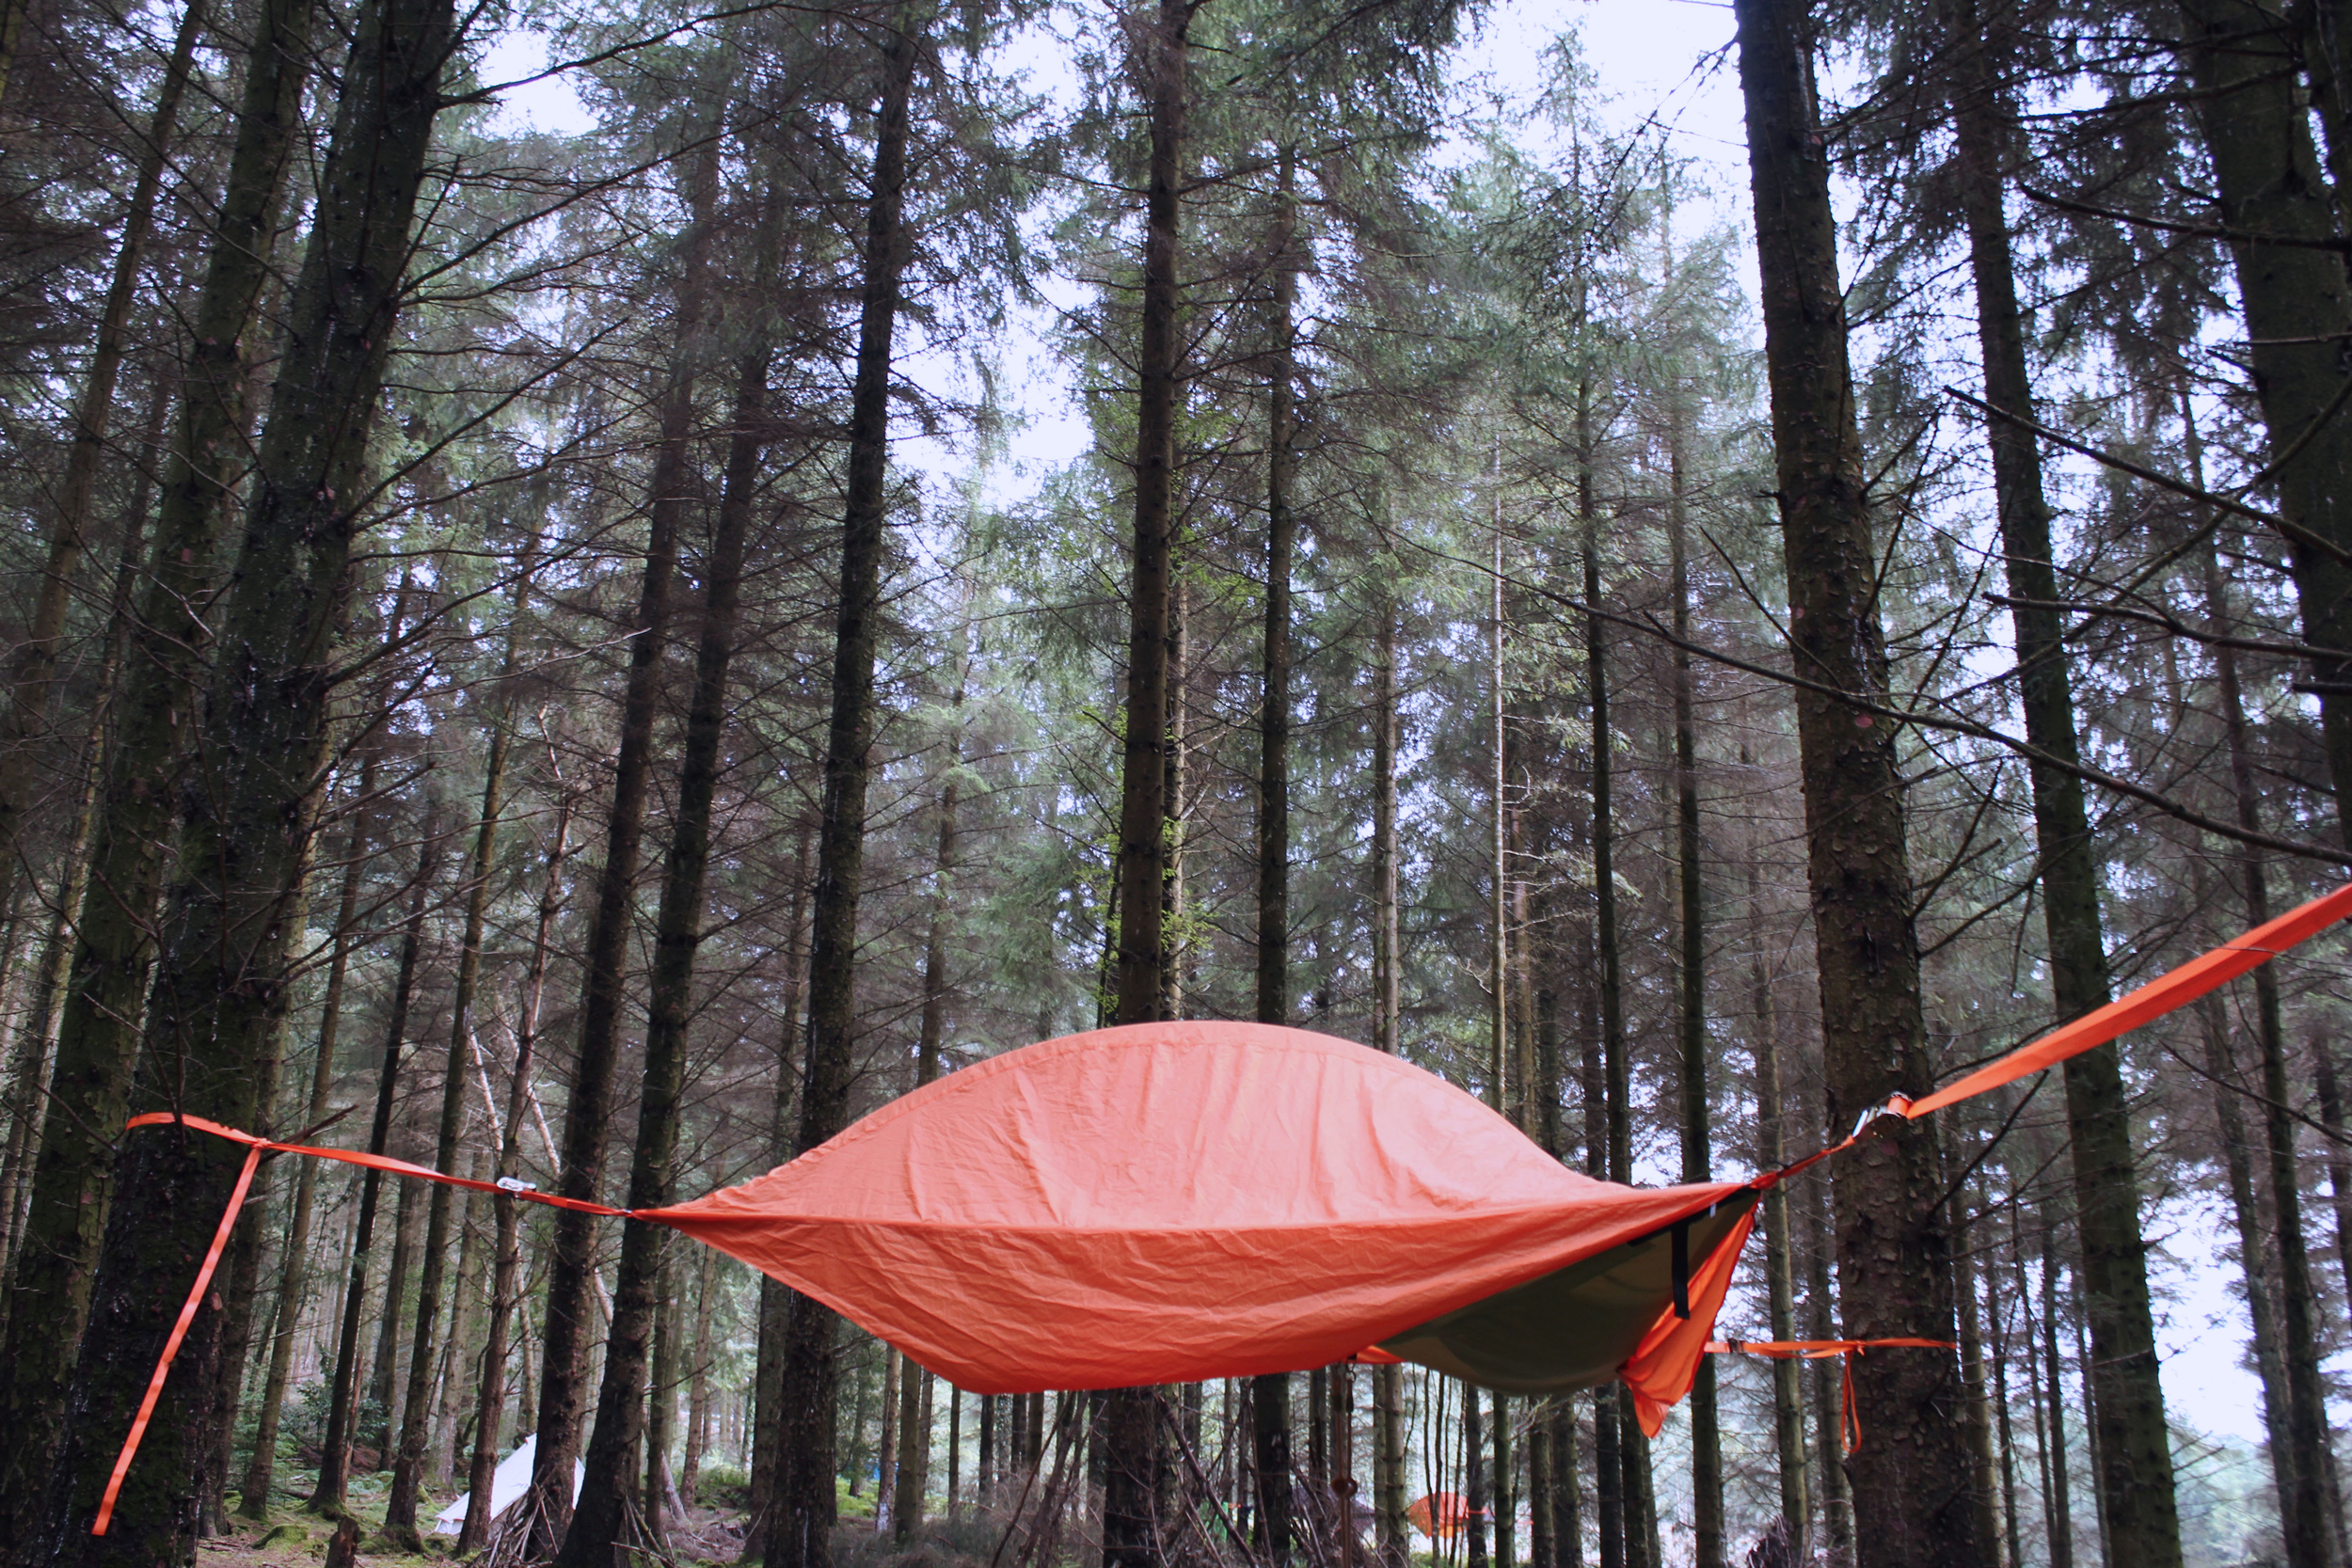 Treetop Camping in a pine forest